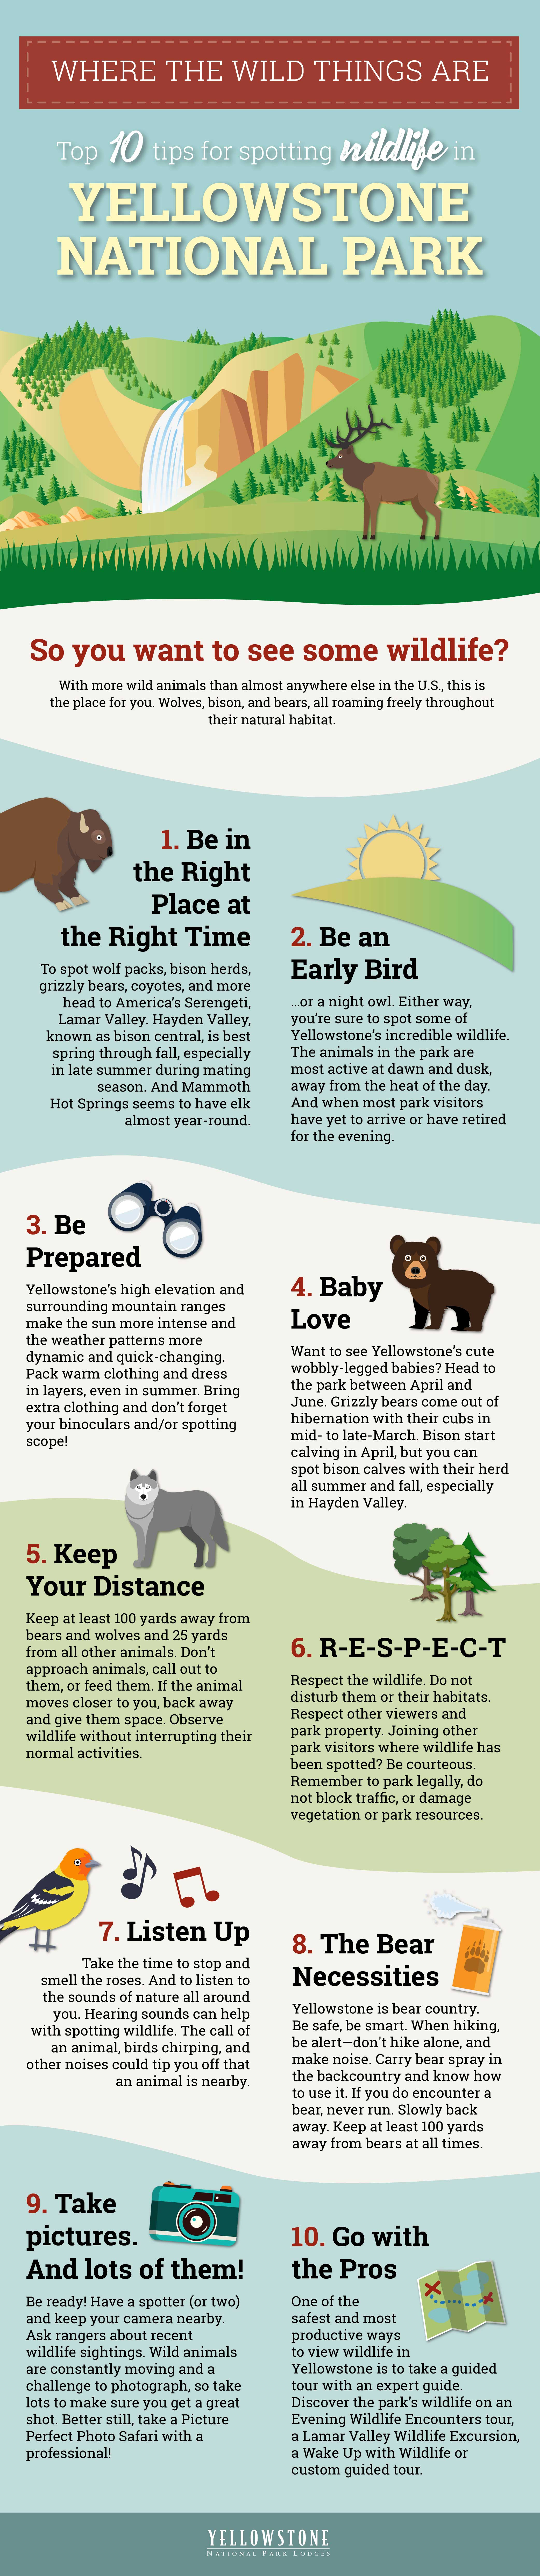 Where the Wild Things Are Infographic